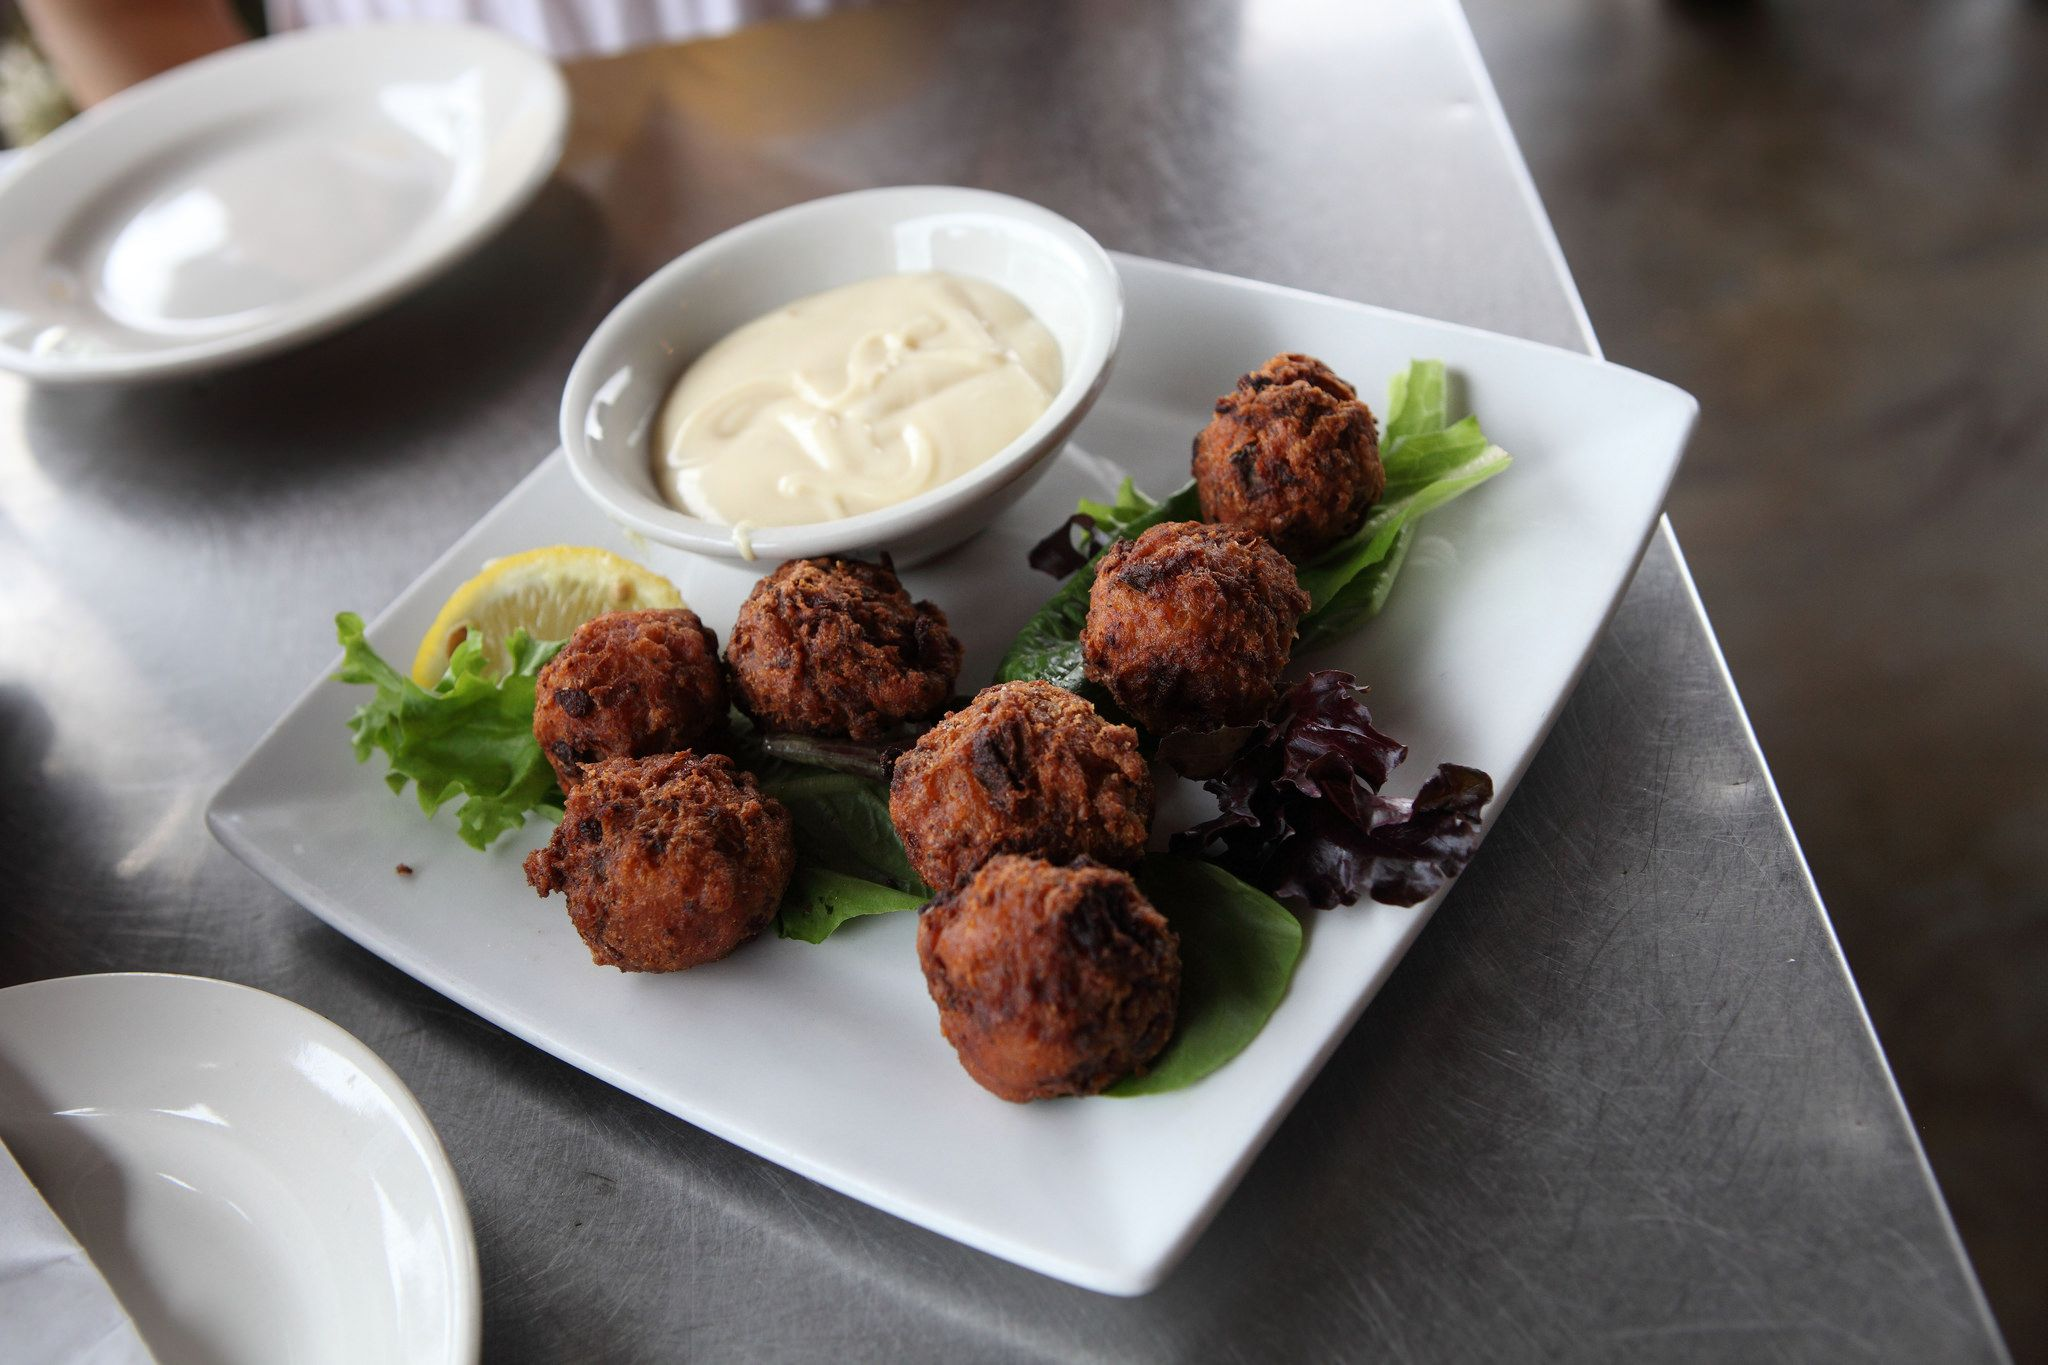 Plate of conch fritters